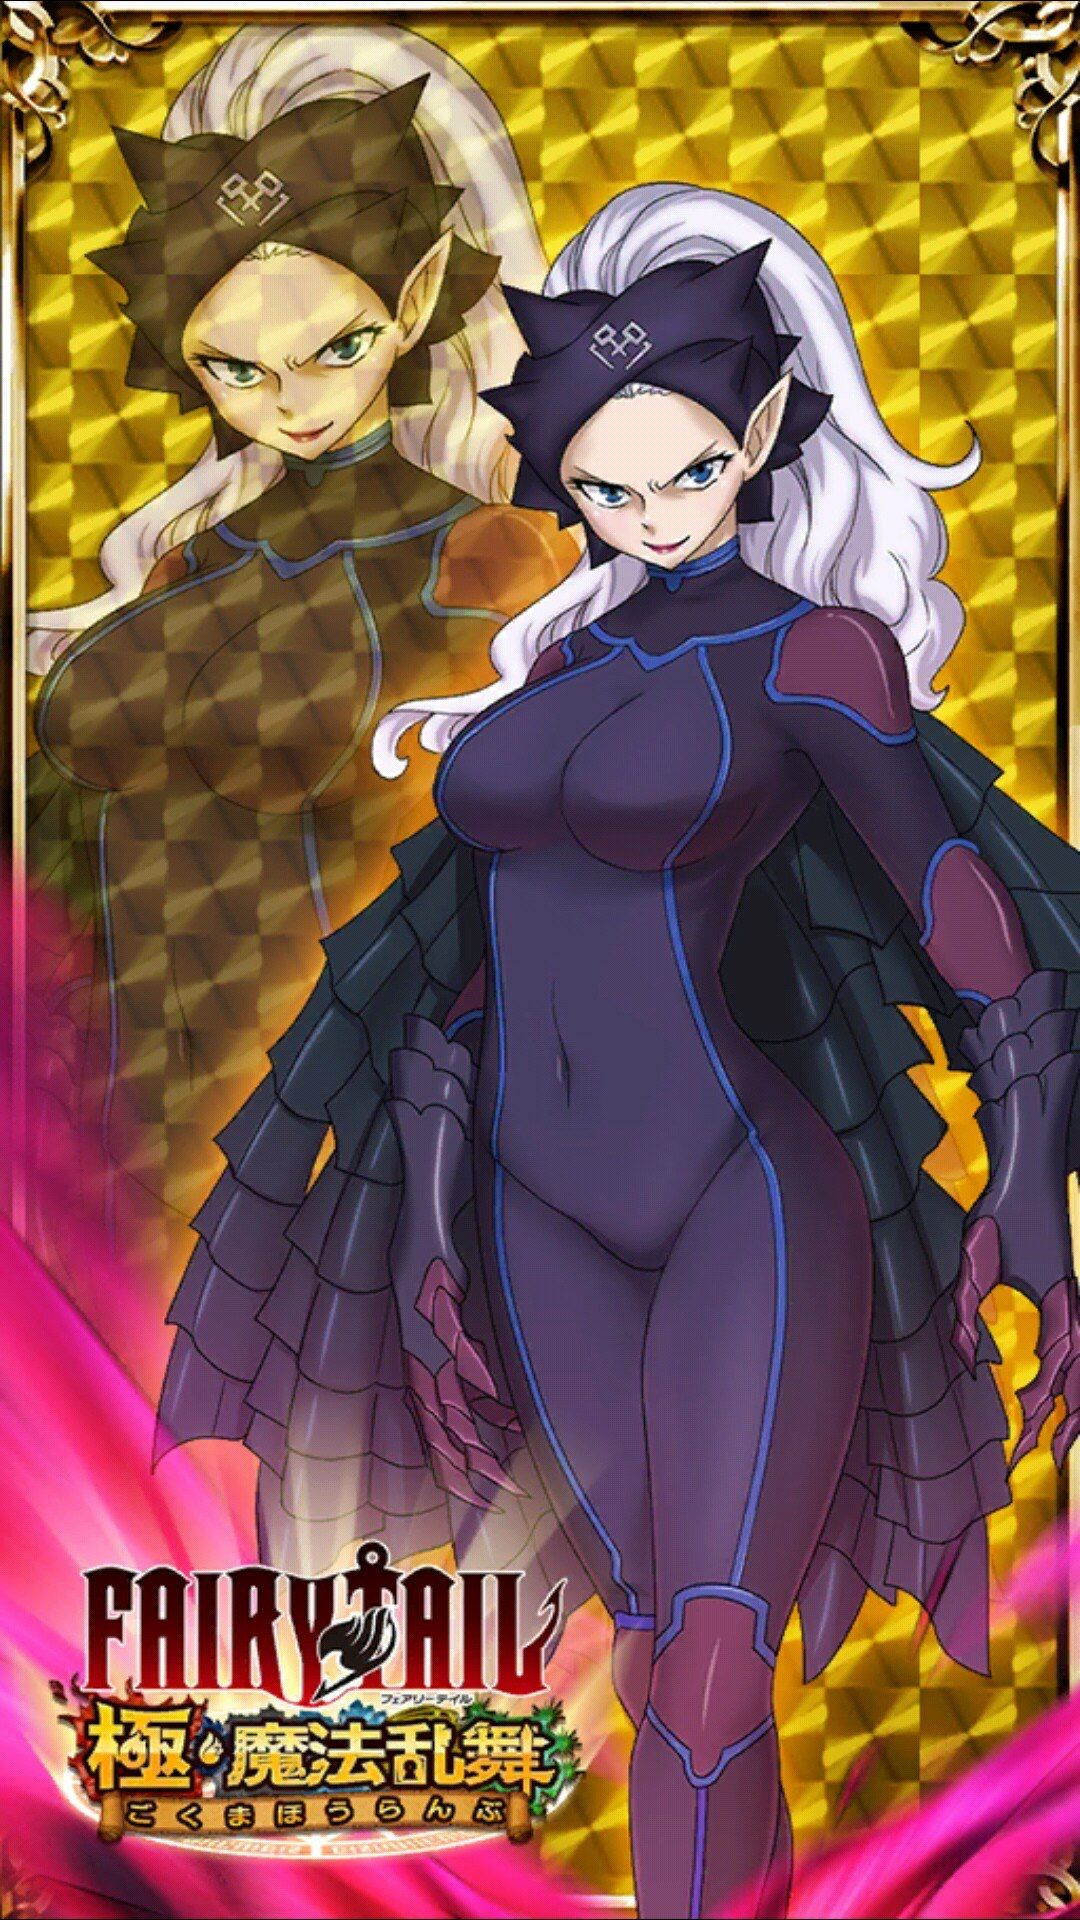 Fairy Tail Ultimate Dance Of Magic Mirajane Strauss Fairy Tail Personnage Fond D Ecran Dessin Fairy Tail The second day of the grand magic games continues. fairy tail ultimate dance of magic